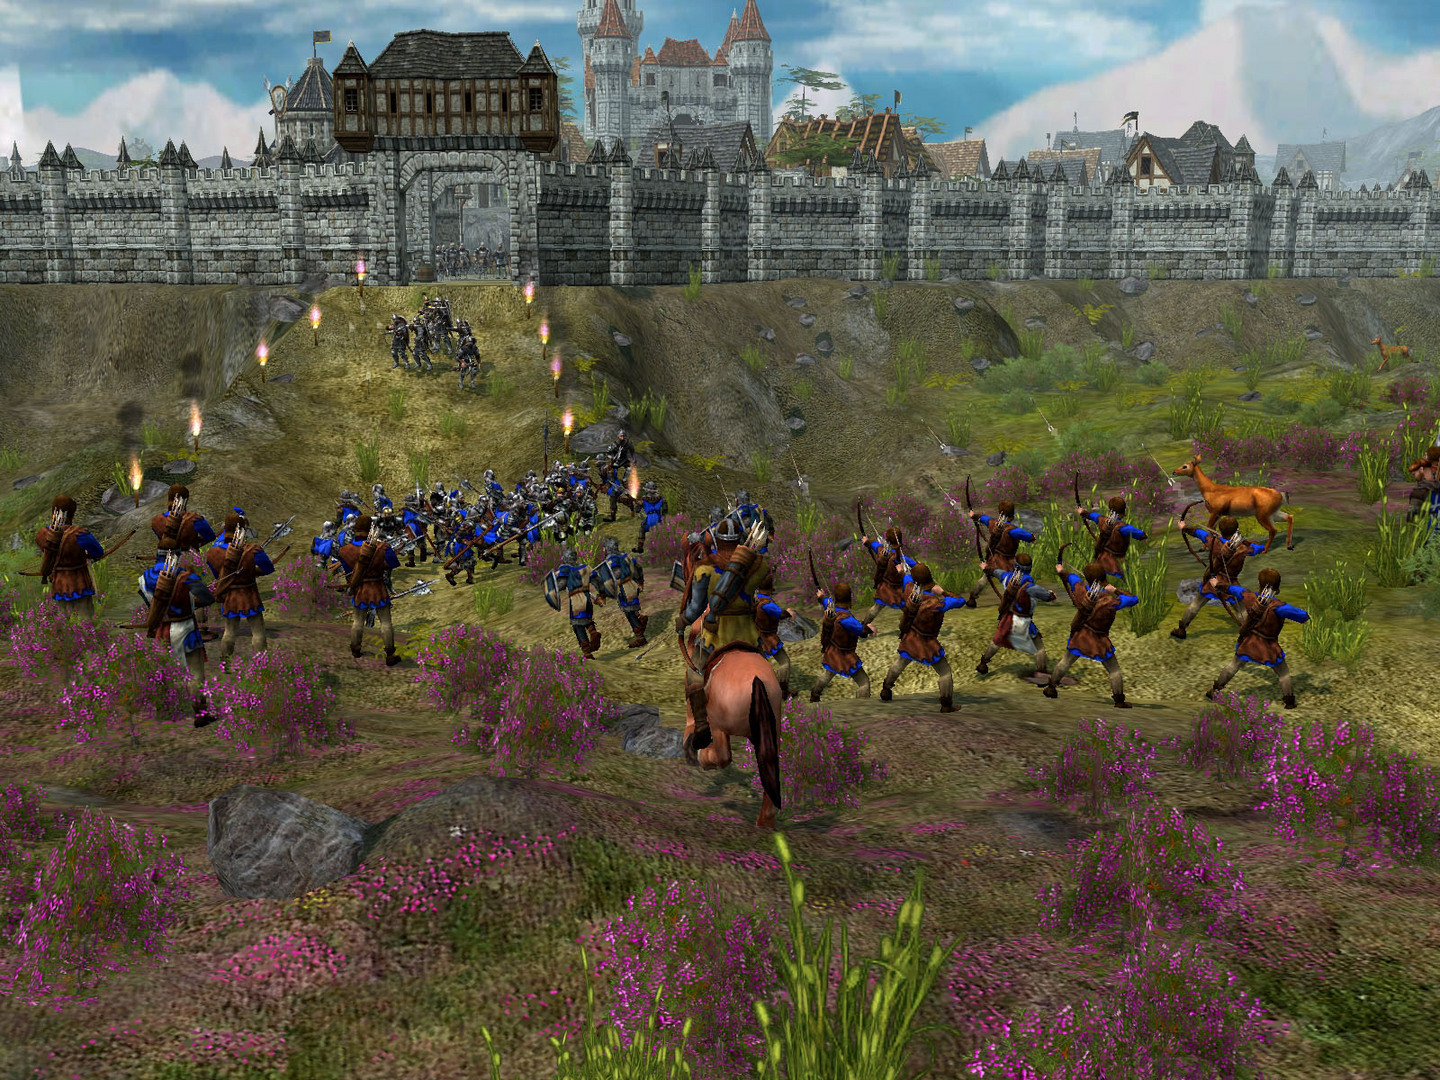 The Settlers: Heritage of Kings screenshot 2